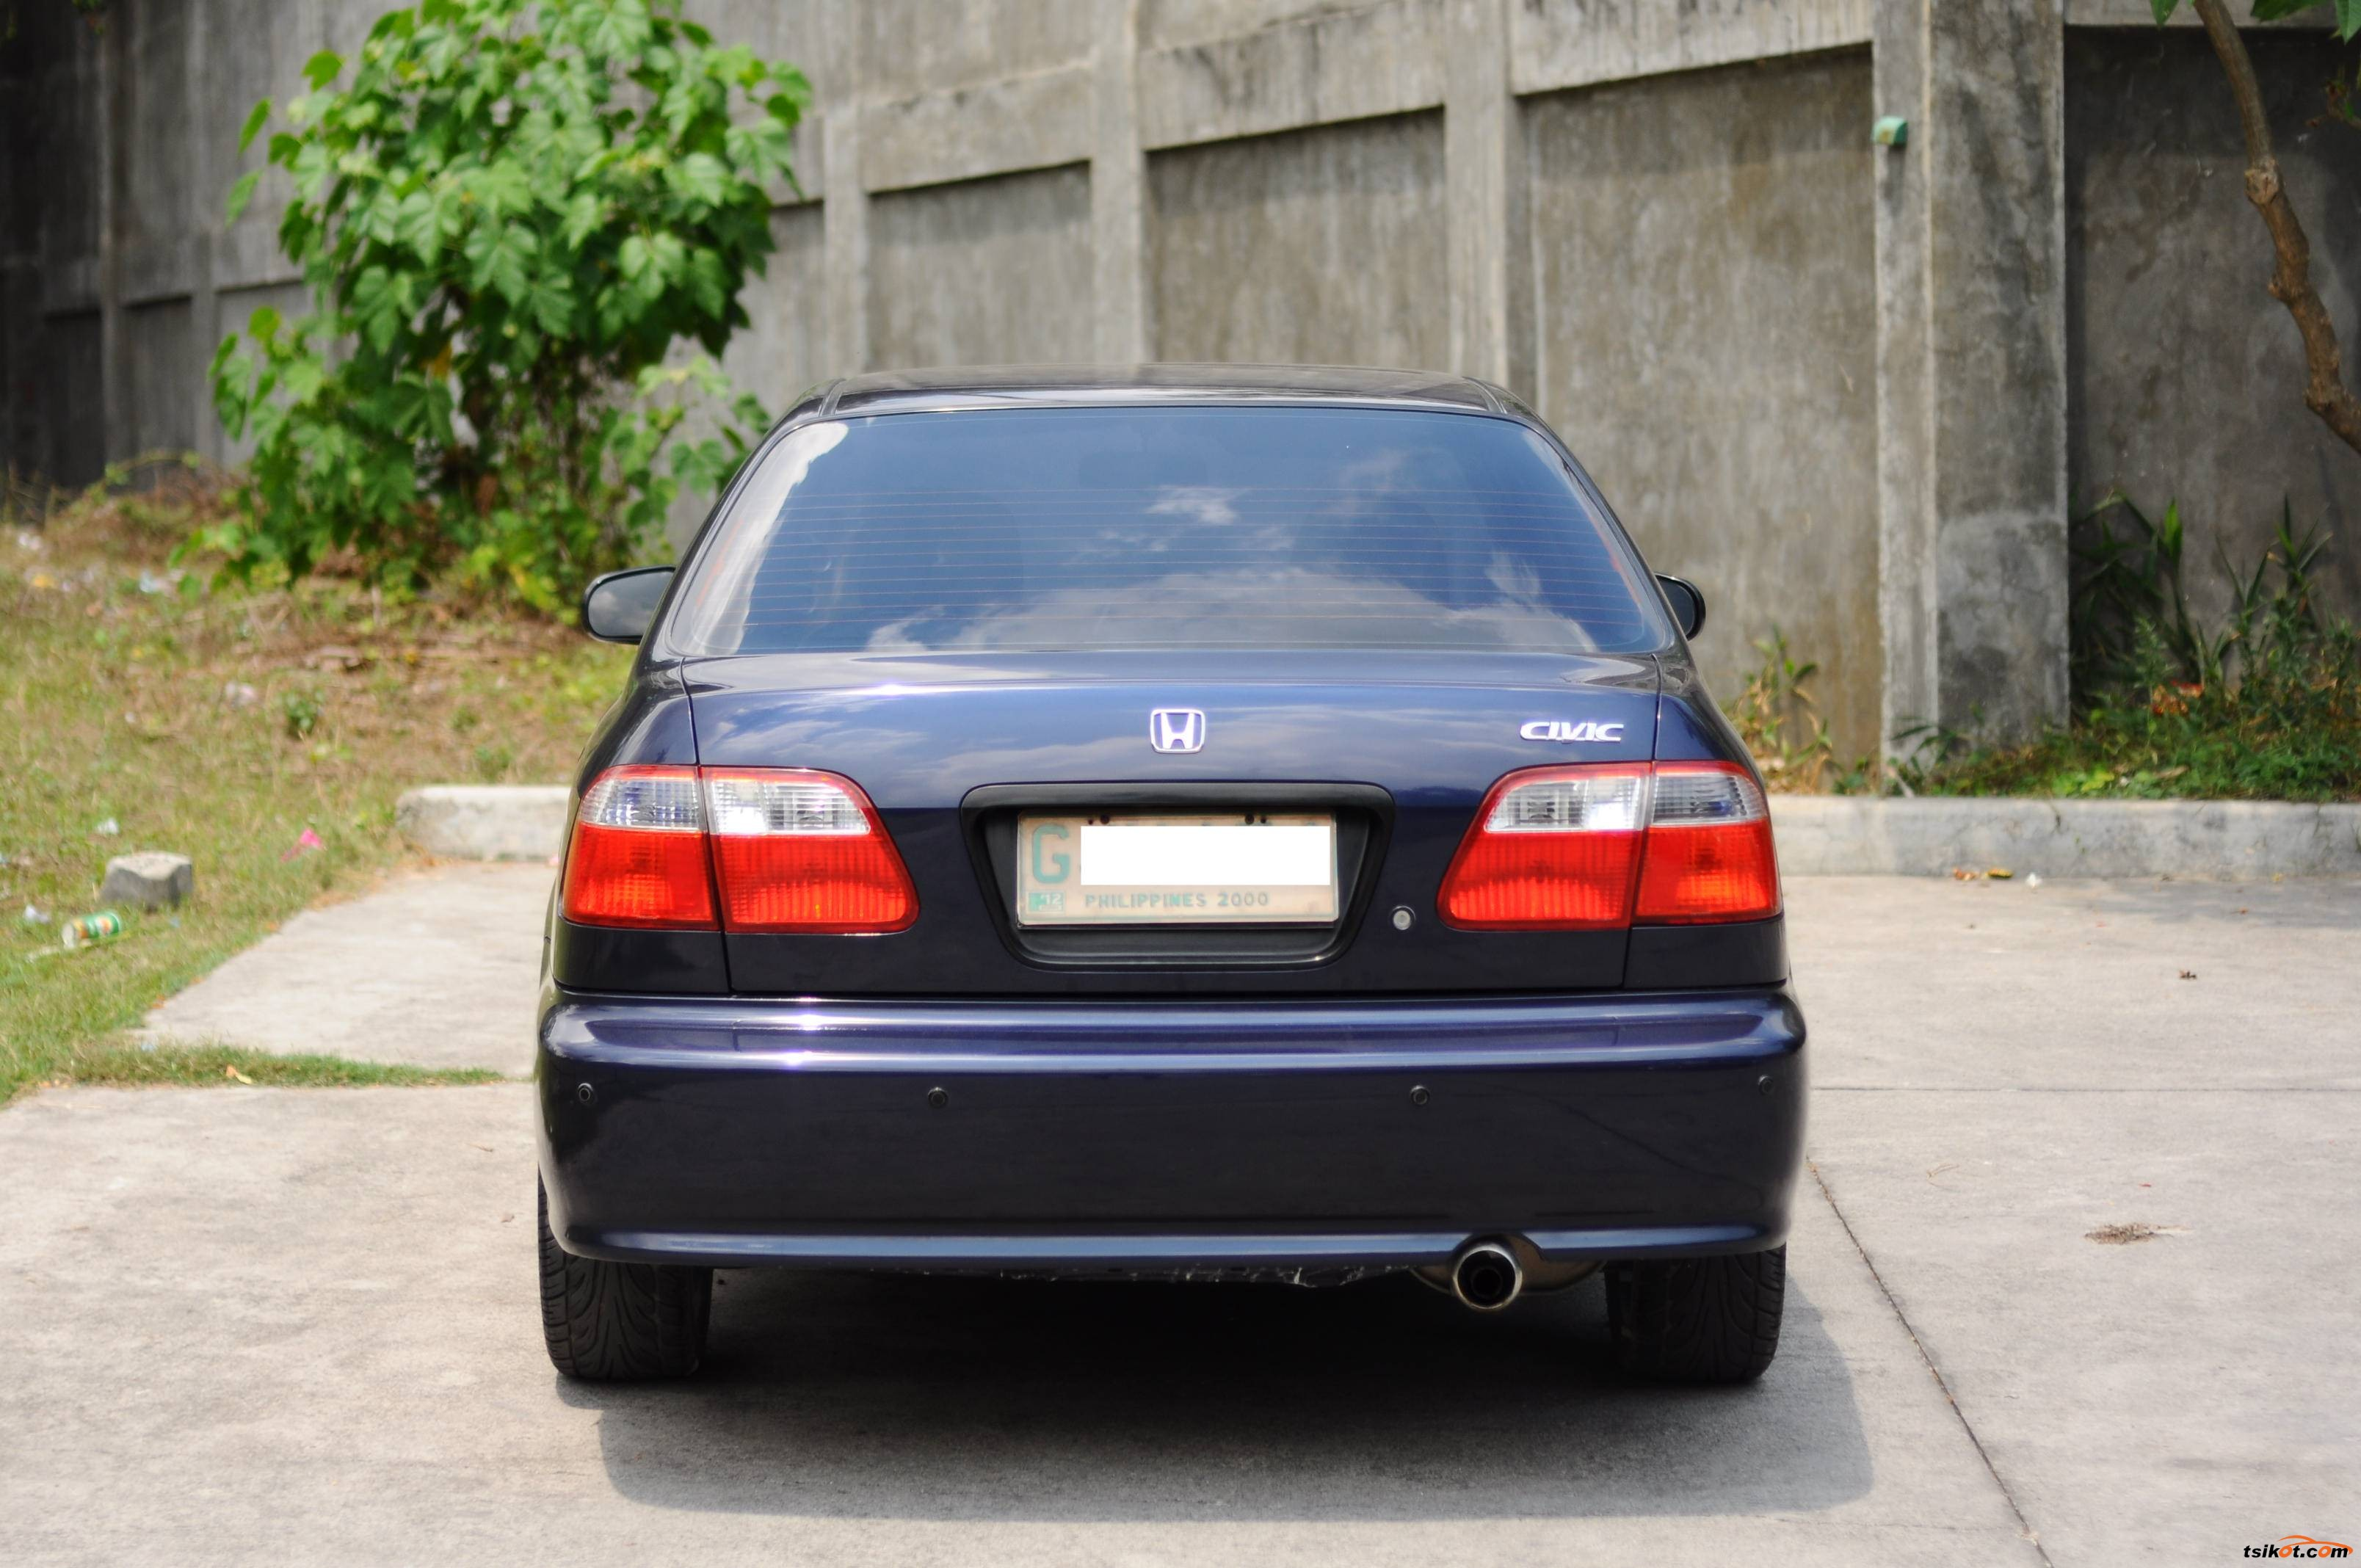 Honda Civic 1999 - 7